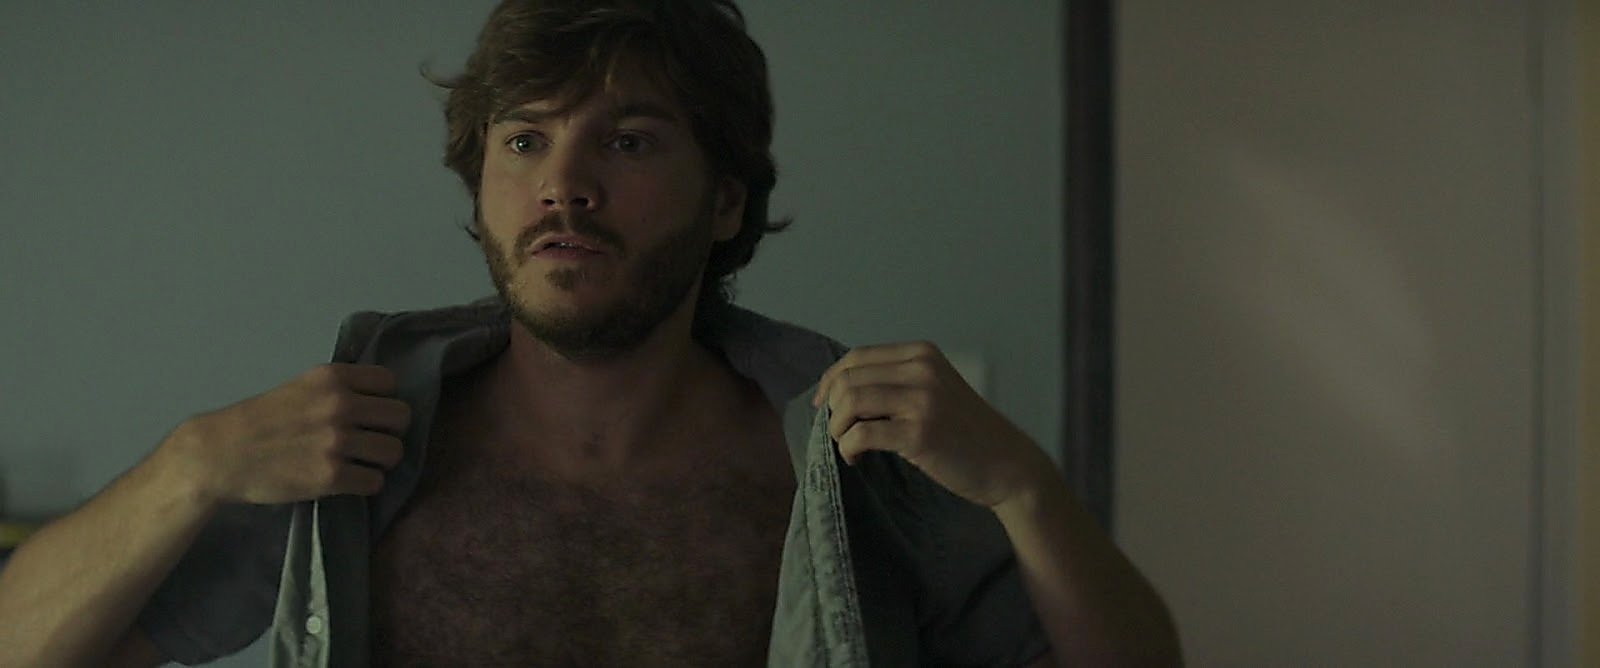 Emile Hirsch latest sexy shirtless scene March 25, 2017, 1pm